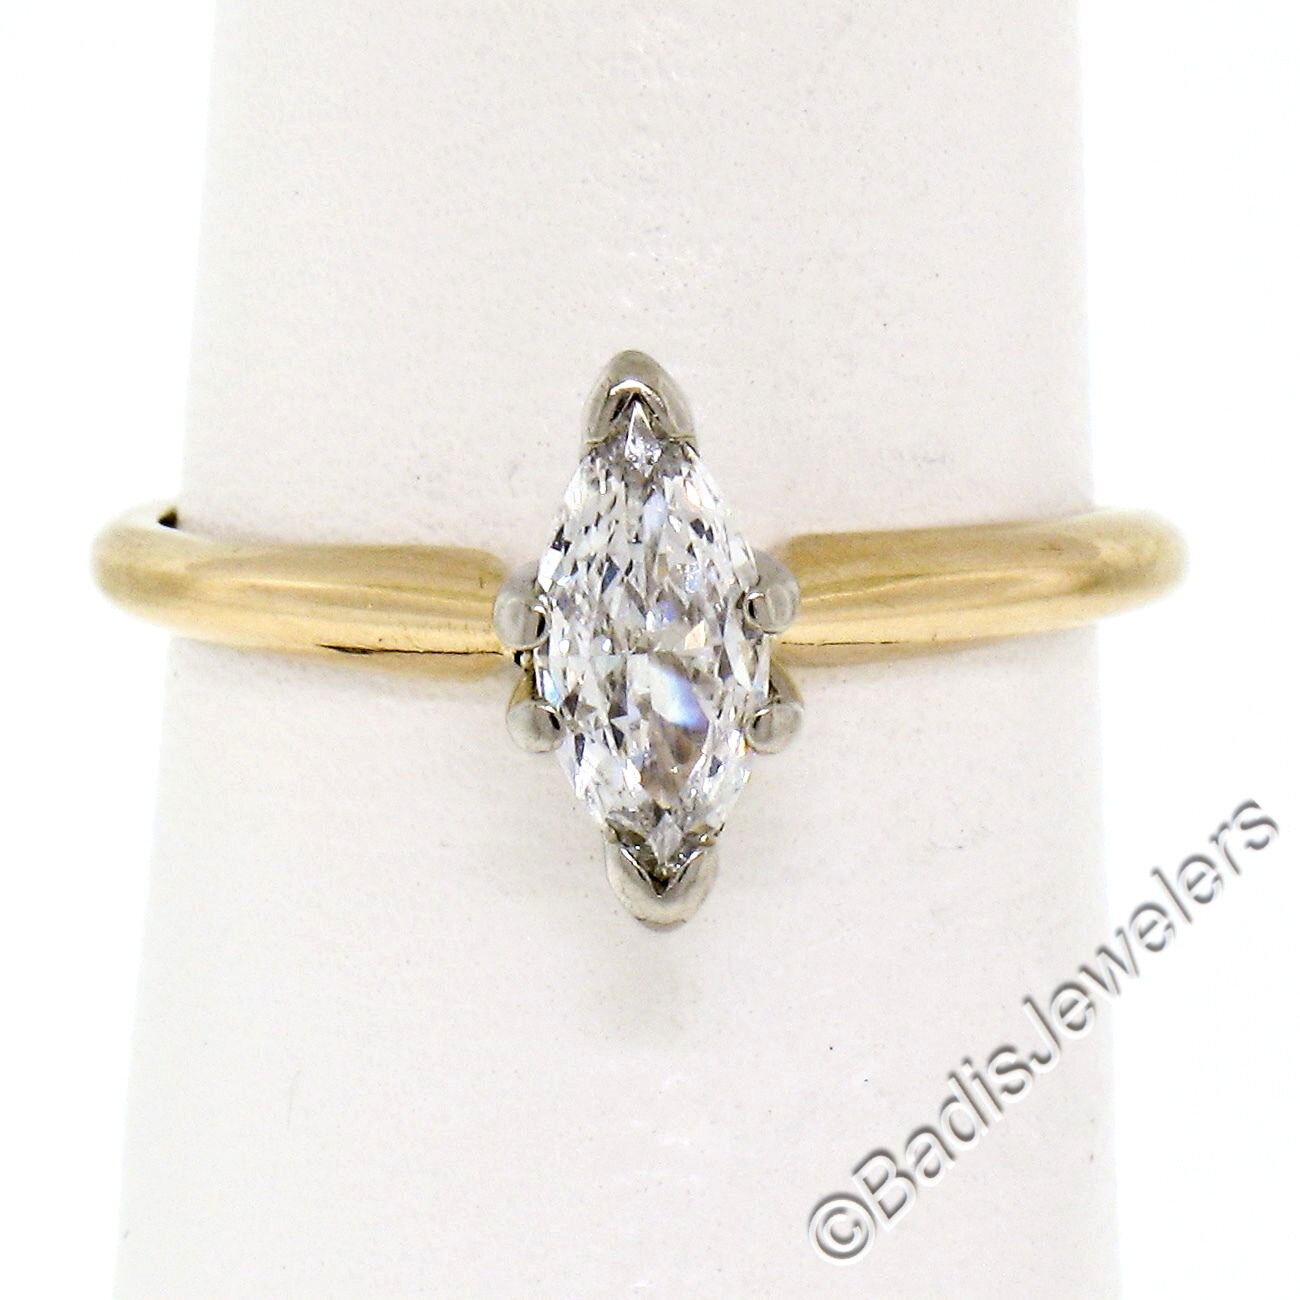 18K Two Tone gold .38ct Marquise Cut Prong Set Diamond Solitaire Engagement Ring